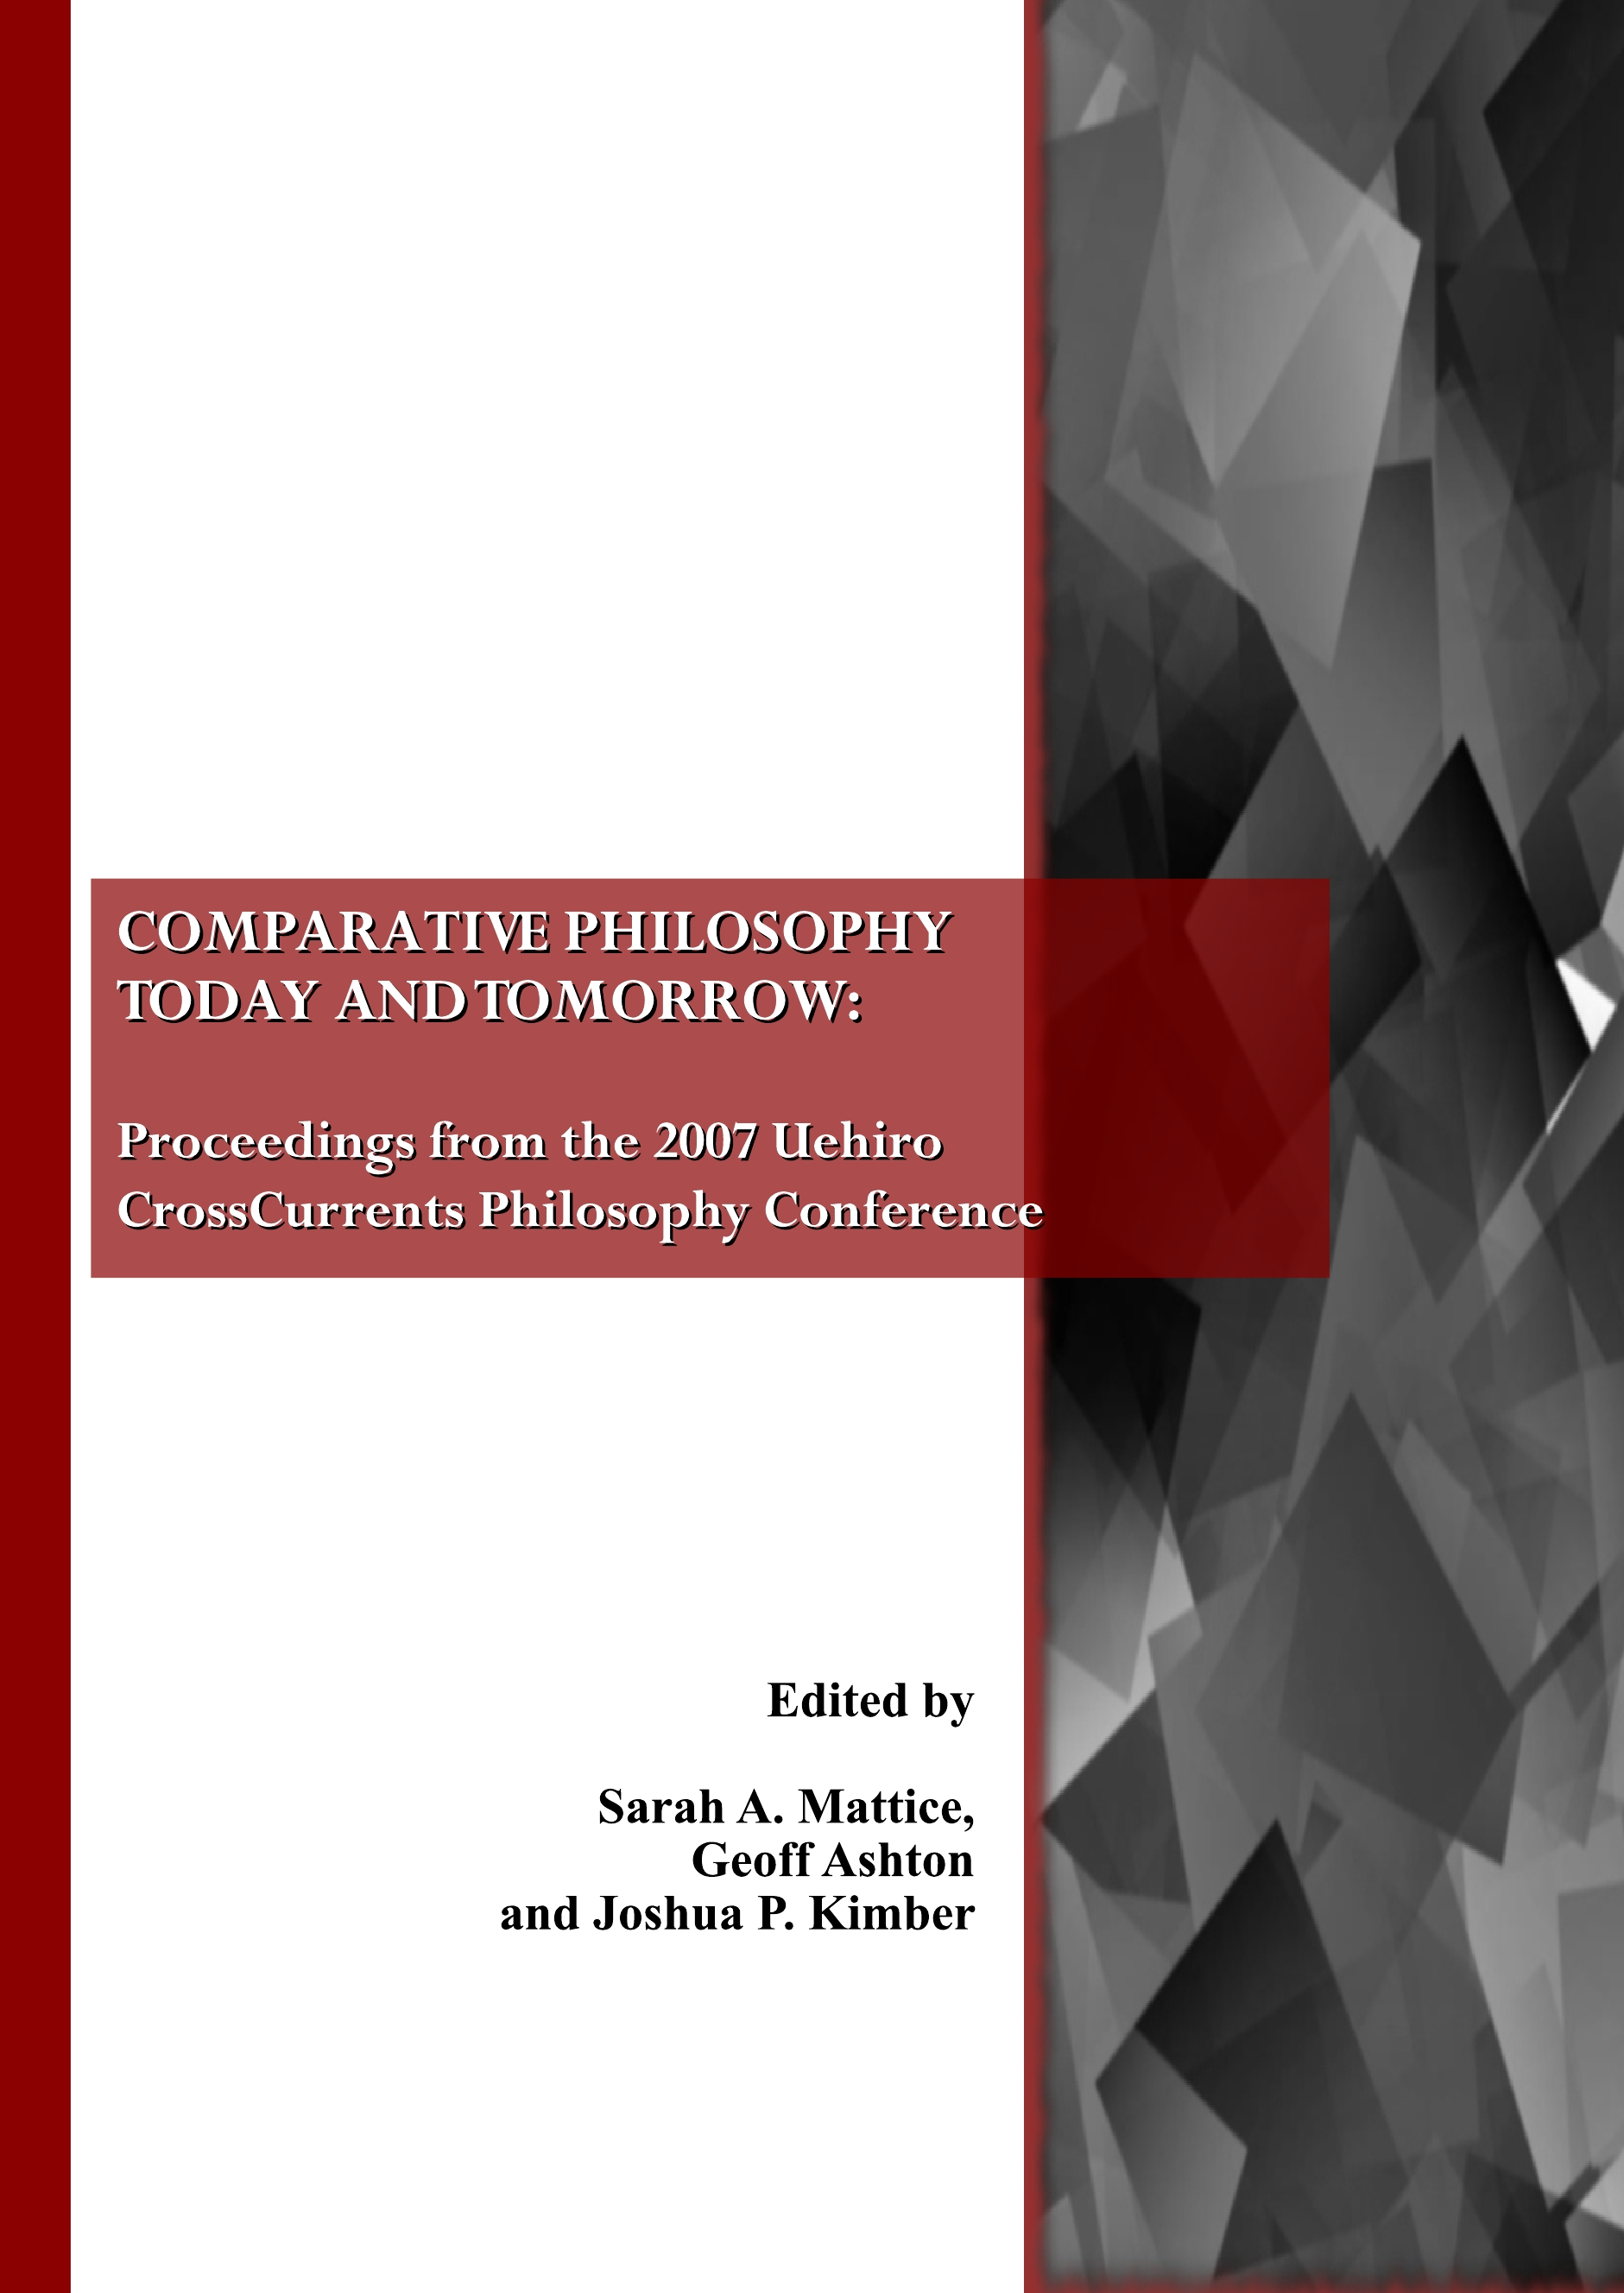 Comparative Philosophy Today and Tomorrow: Proceedings from the 2007 Uehiro CrossCurrents Philosophy Conference